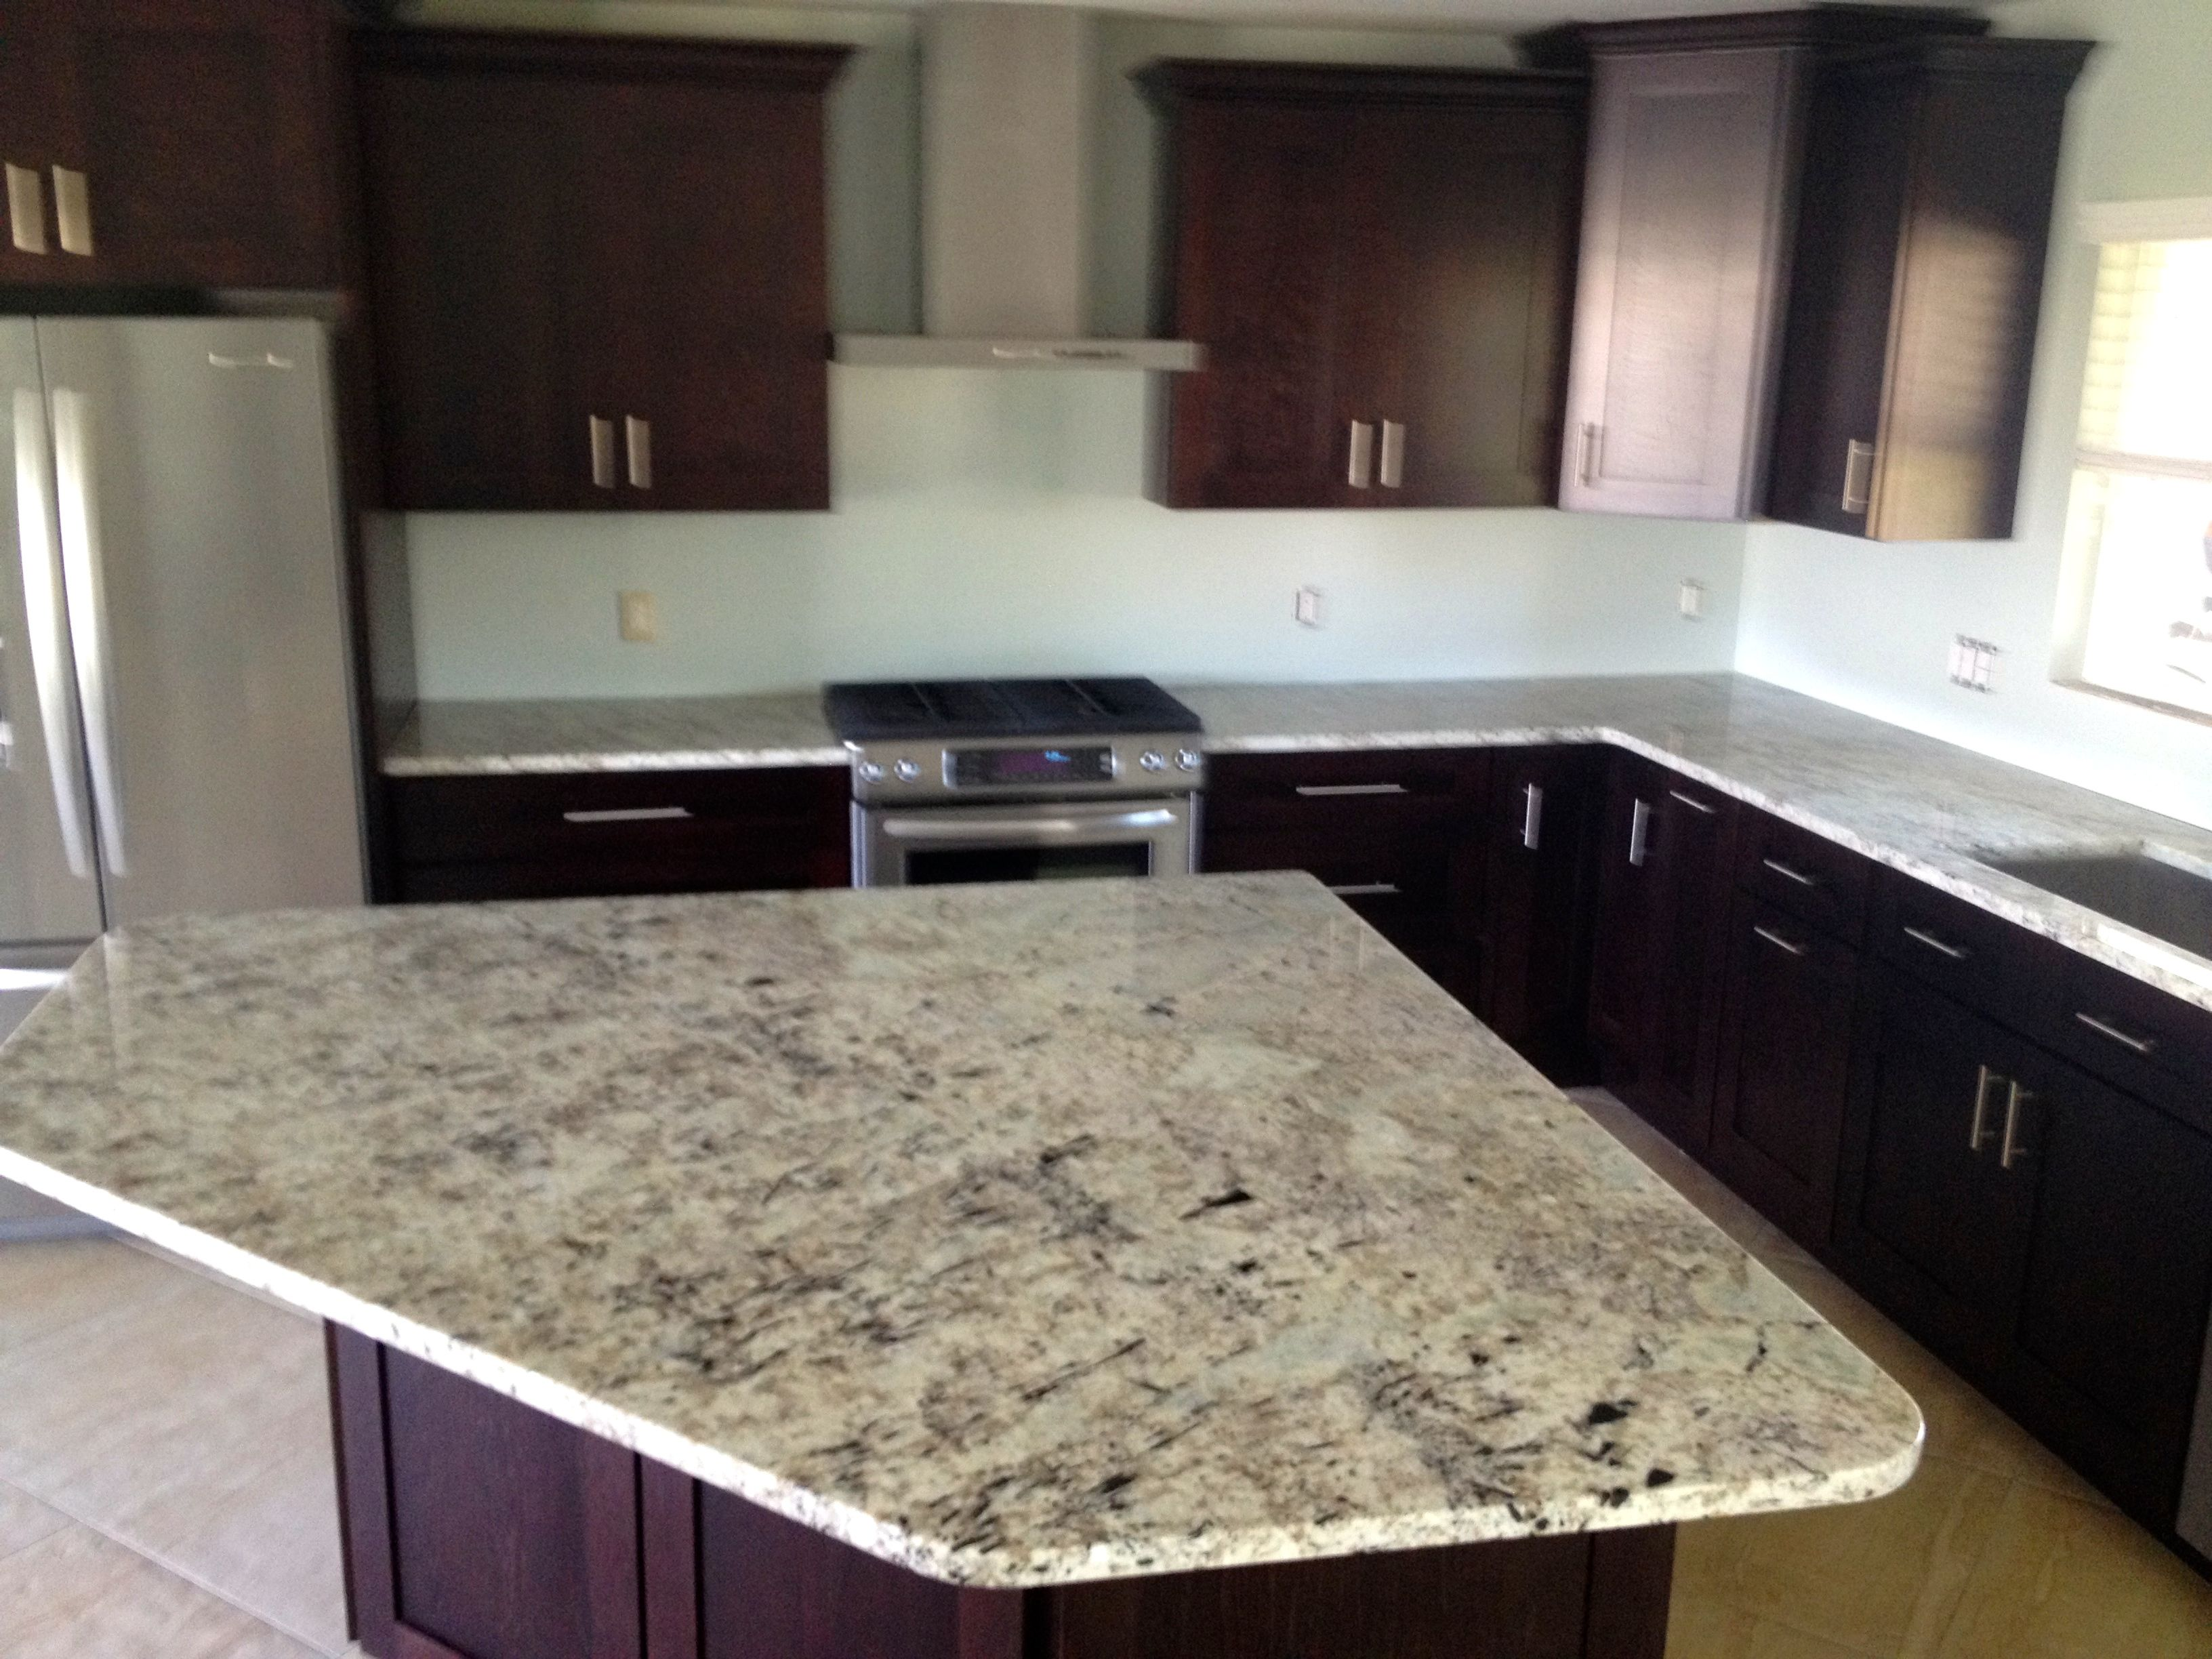 Mocha Shaker Cabinets Modern Hardware Galaxy White Granite Tops Backsplash Not Installed Yet Stainless Steel App White Counters Kitchen Kitchen Cabinets